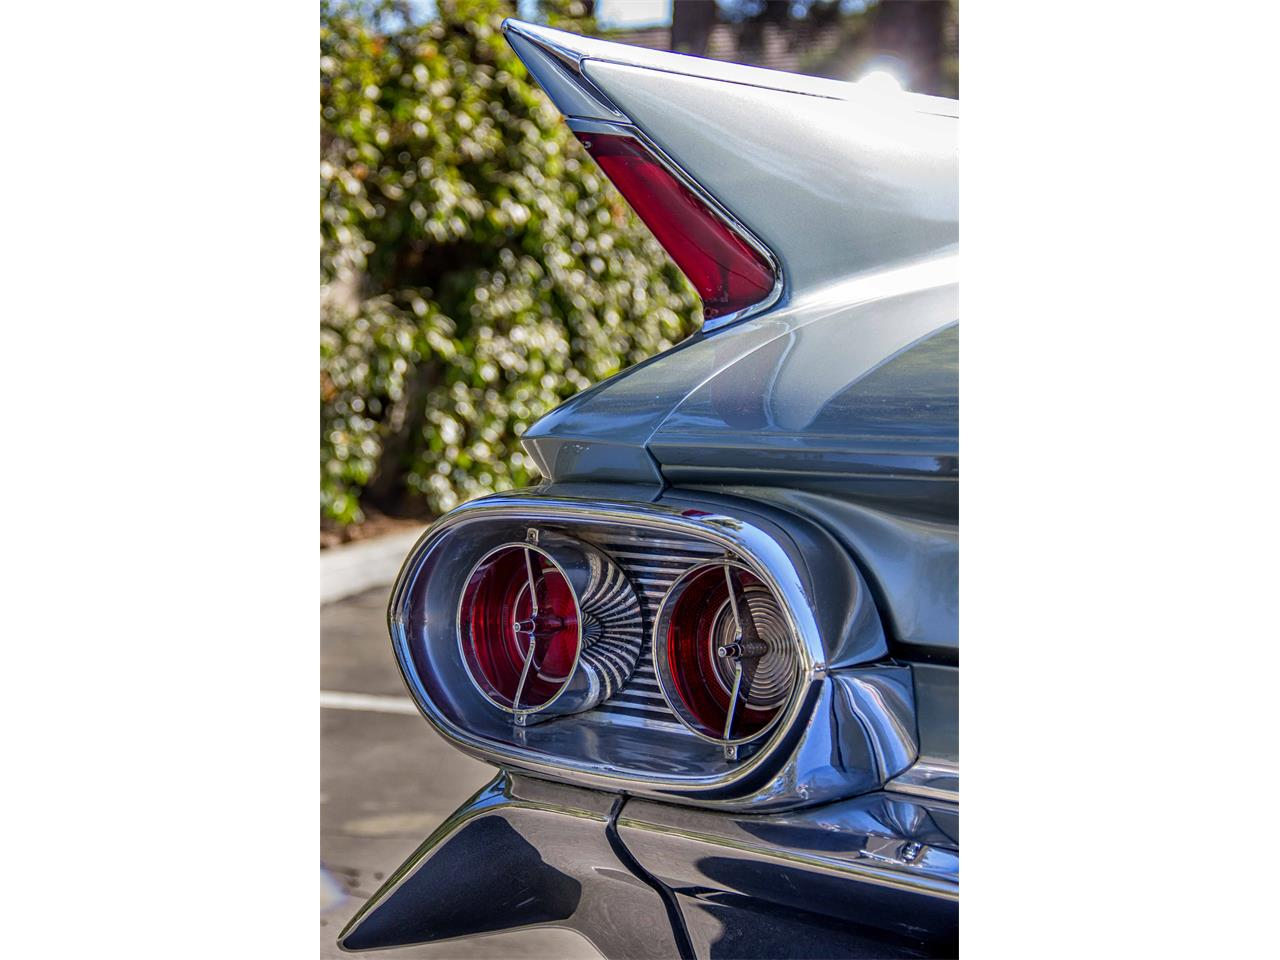 Large Picture of Classic 1961 DeVille located in San Francisco California - $55,500.00 Offered by a Private Seller - K2GI